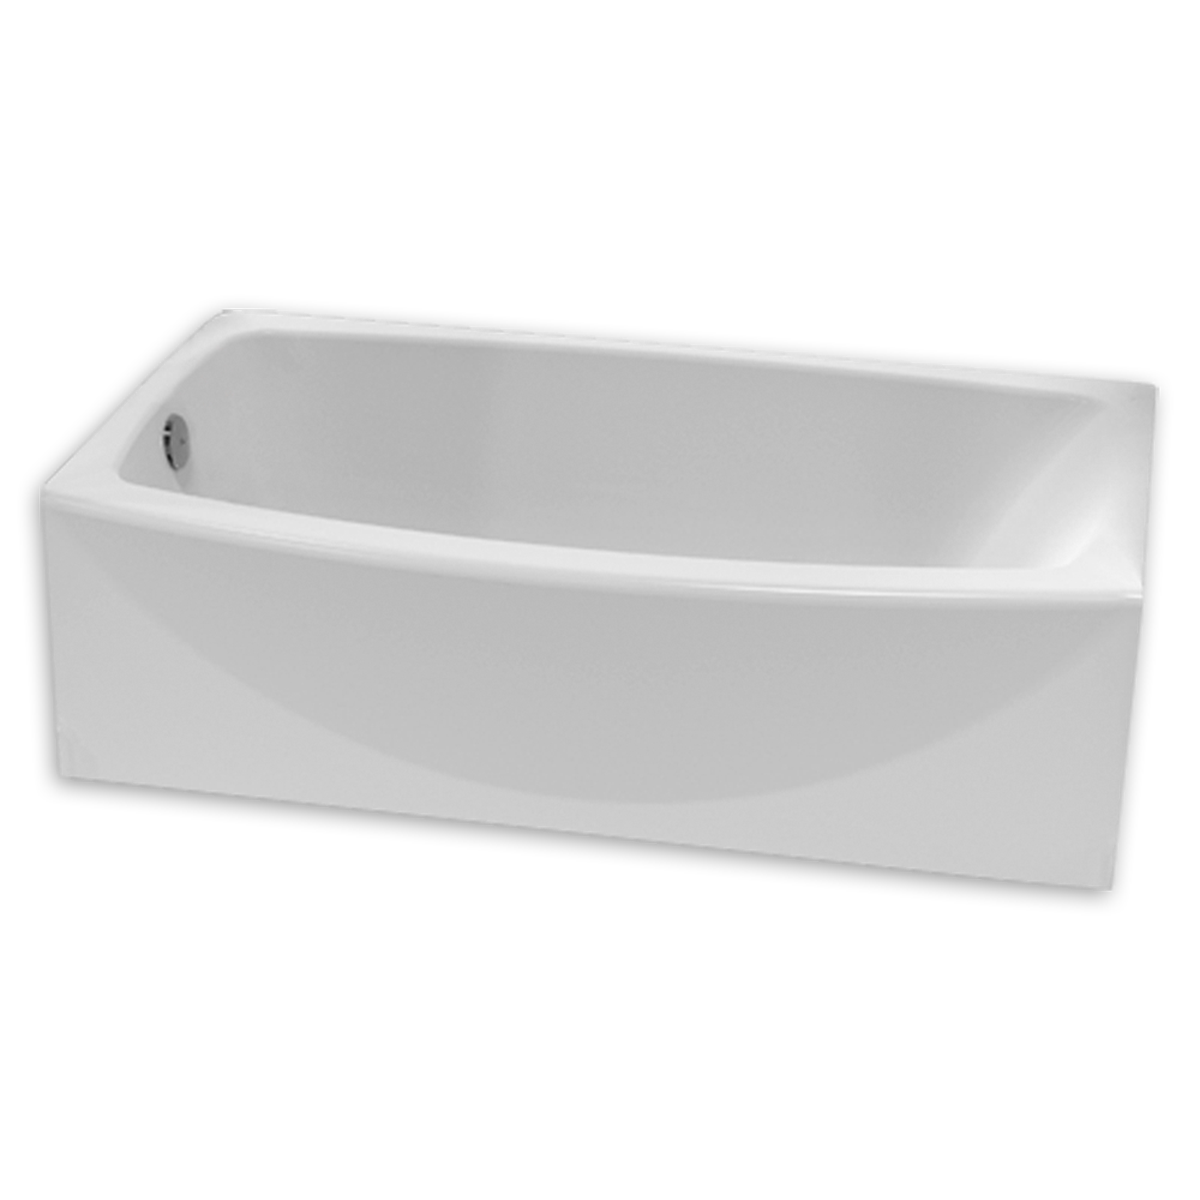 2647112011 Ovation Tub American Standard Bathtubs Complete Bathrooms Bathtub